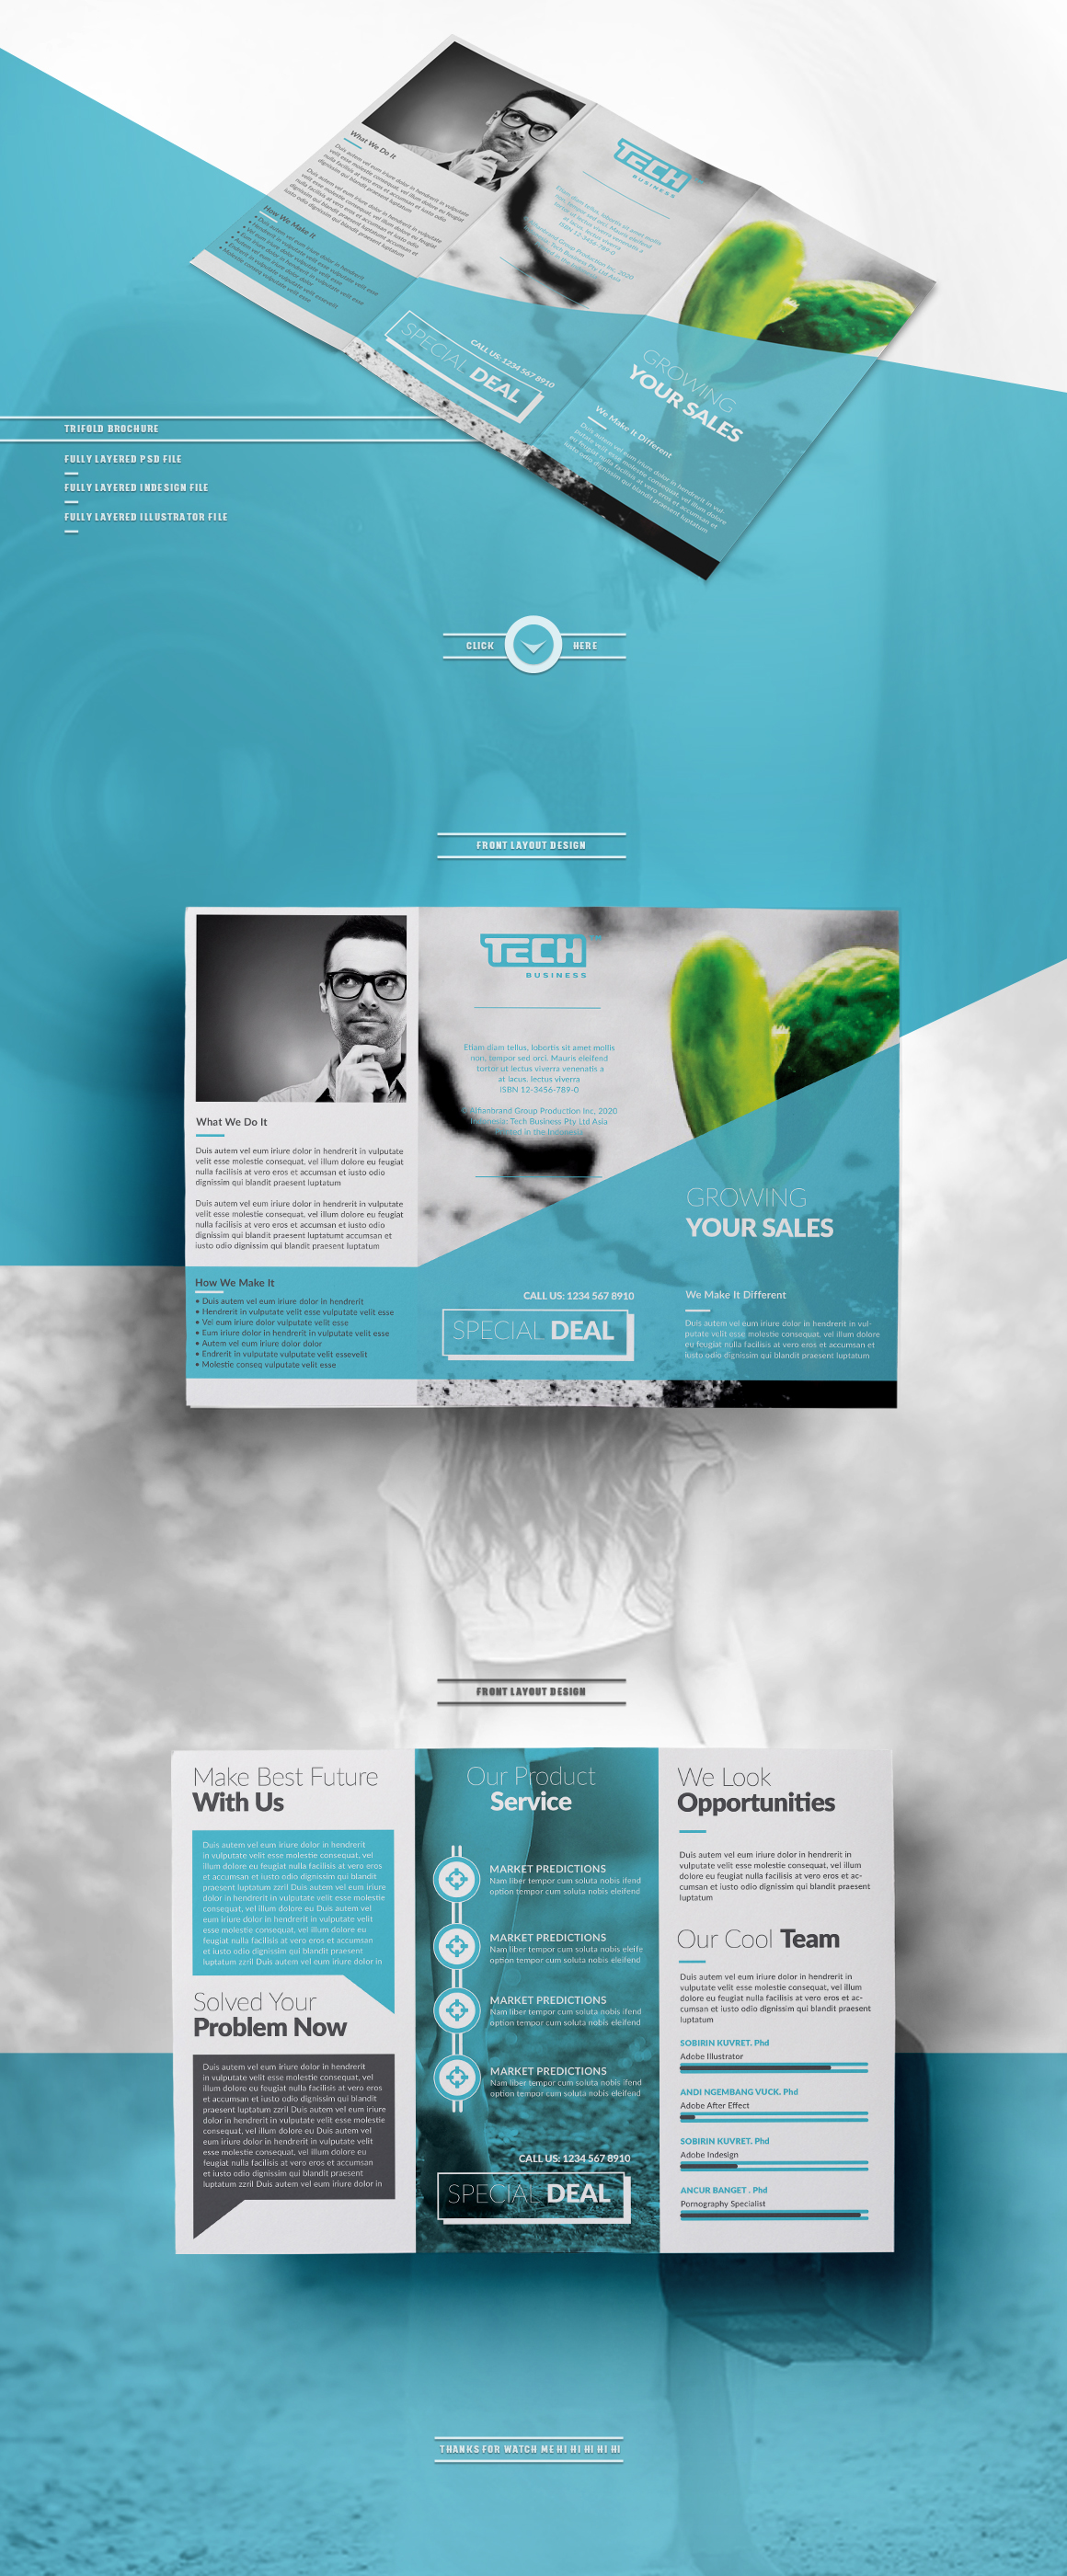 example of trifold brochure c Fiverr freelancer will provide flyers & brochures services and design professional bifold brochure, trifold brochure design  (for example, pamphlet or brochure.